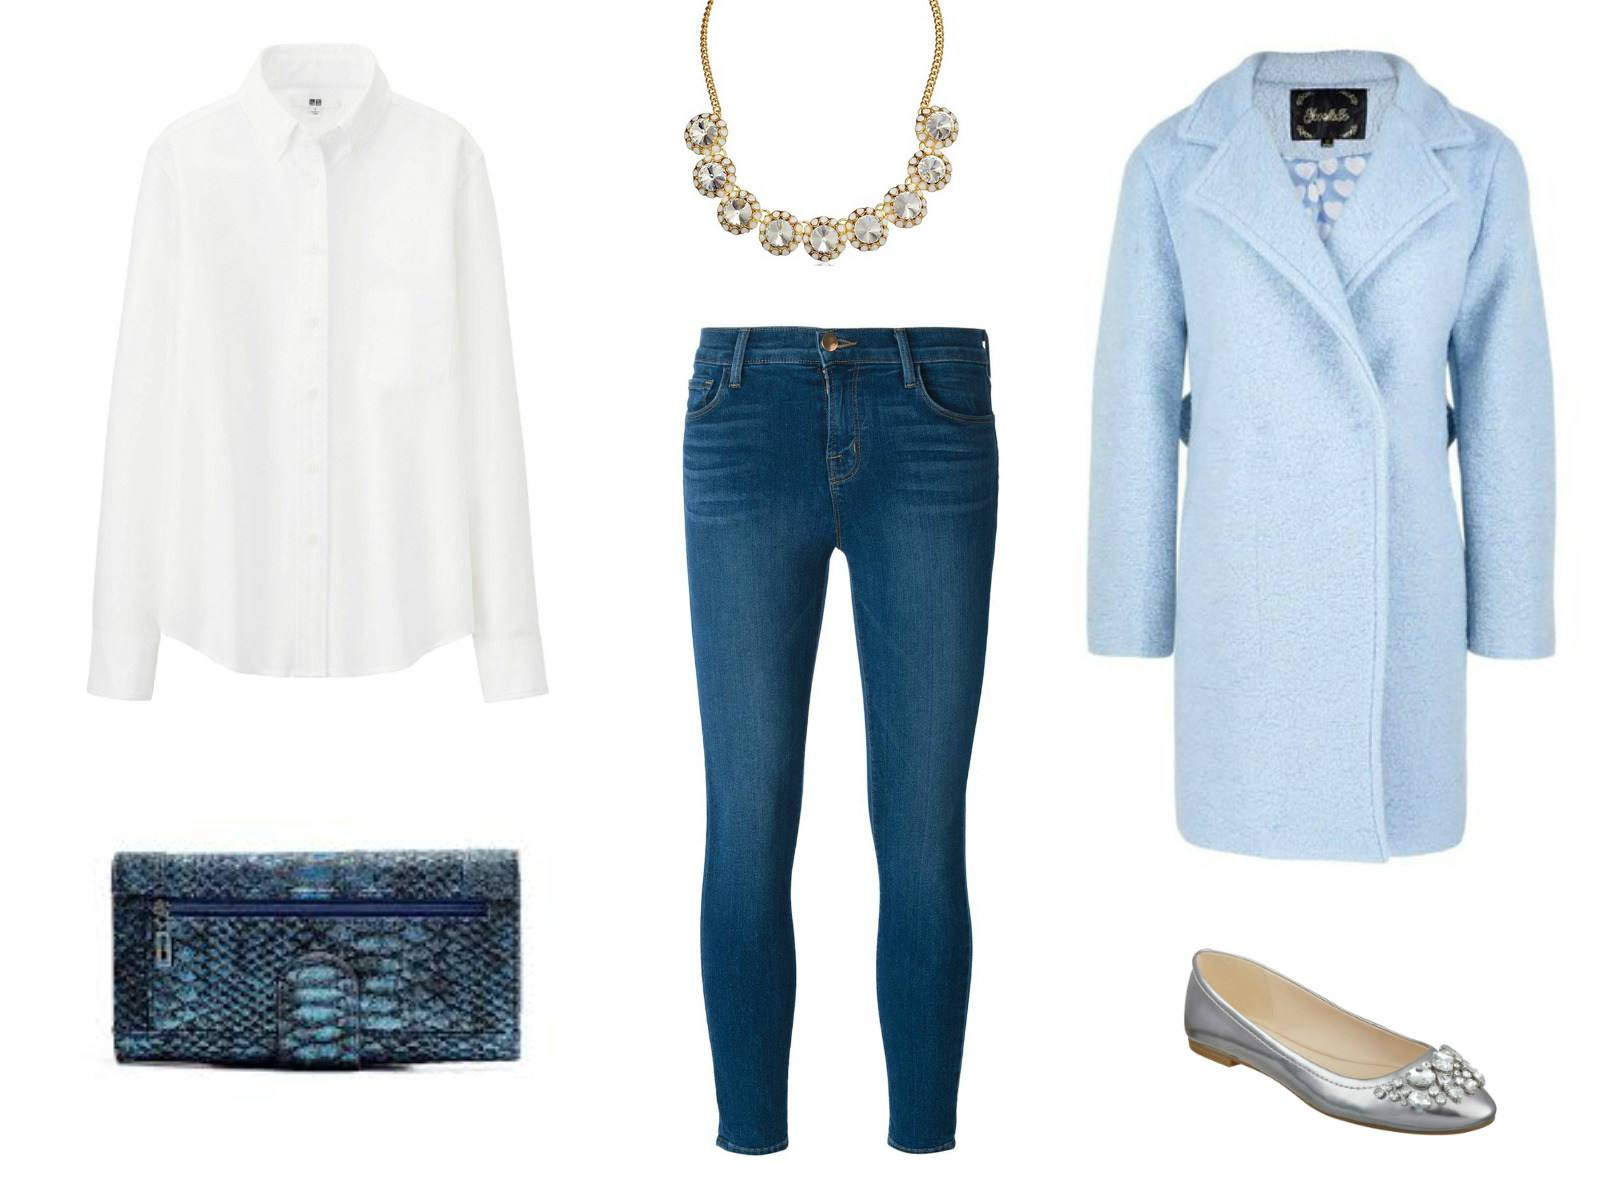 Outfit idea - cropped jeans and white shirt